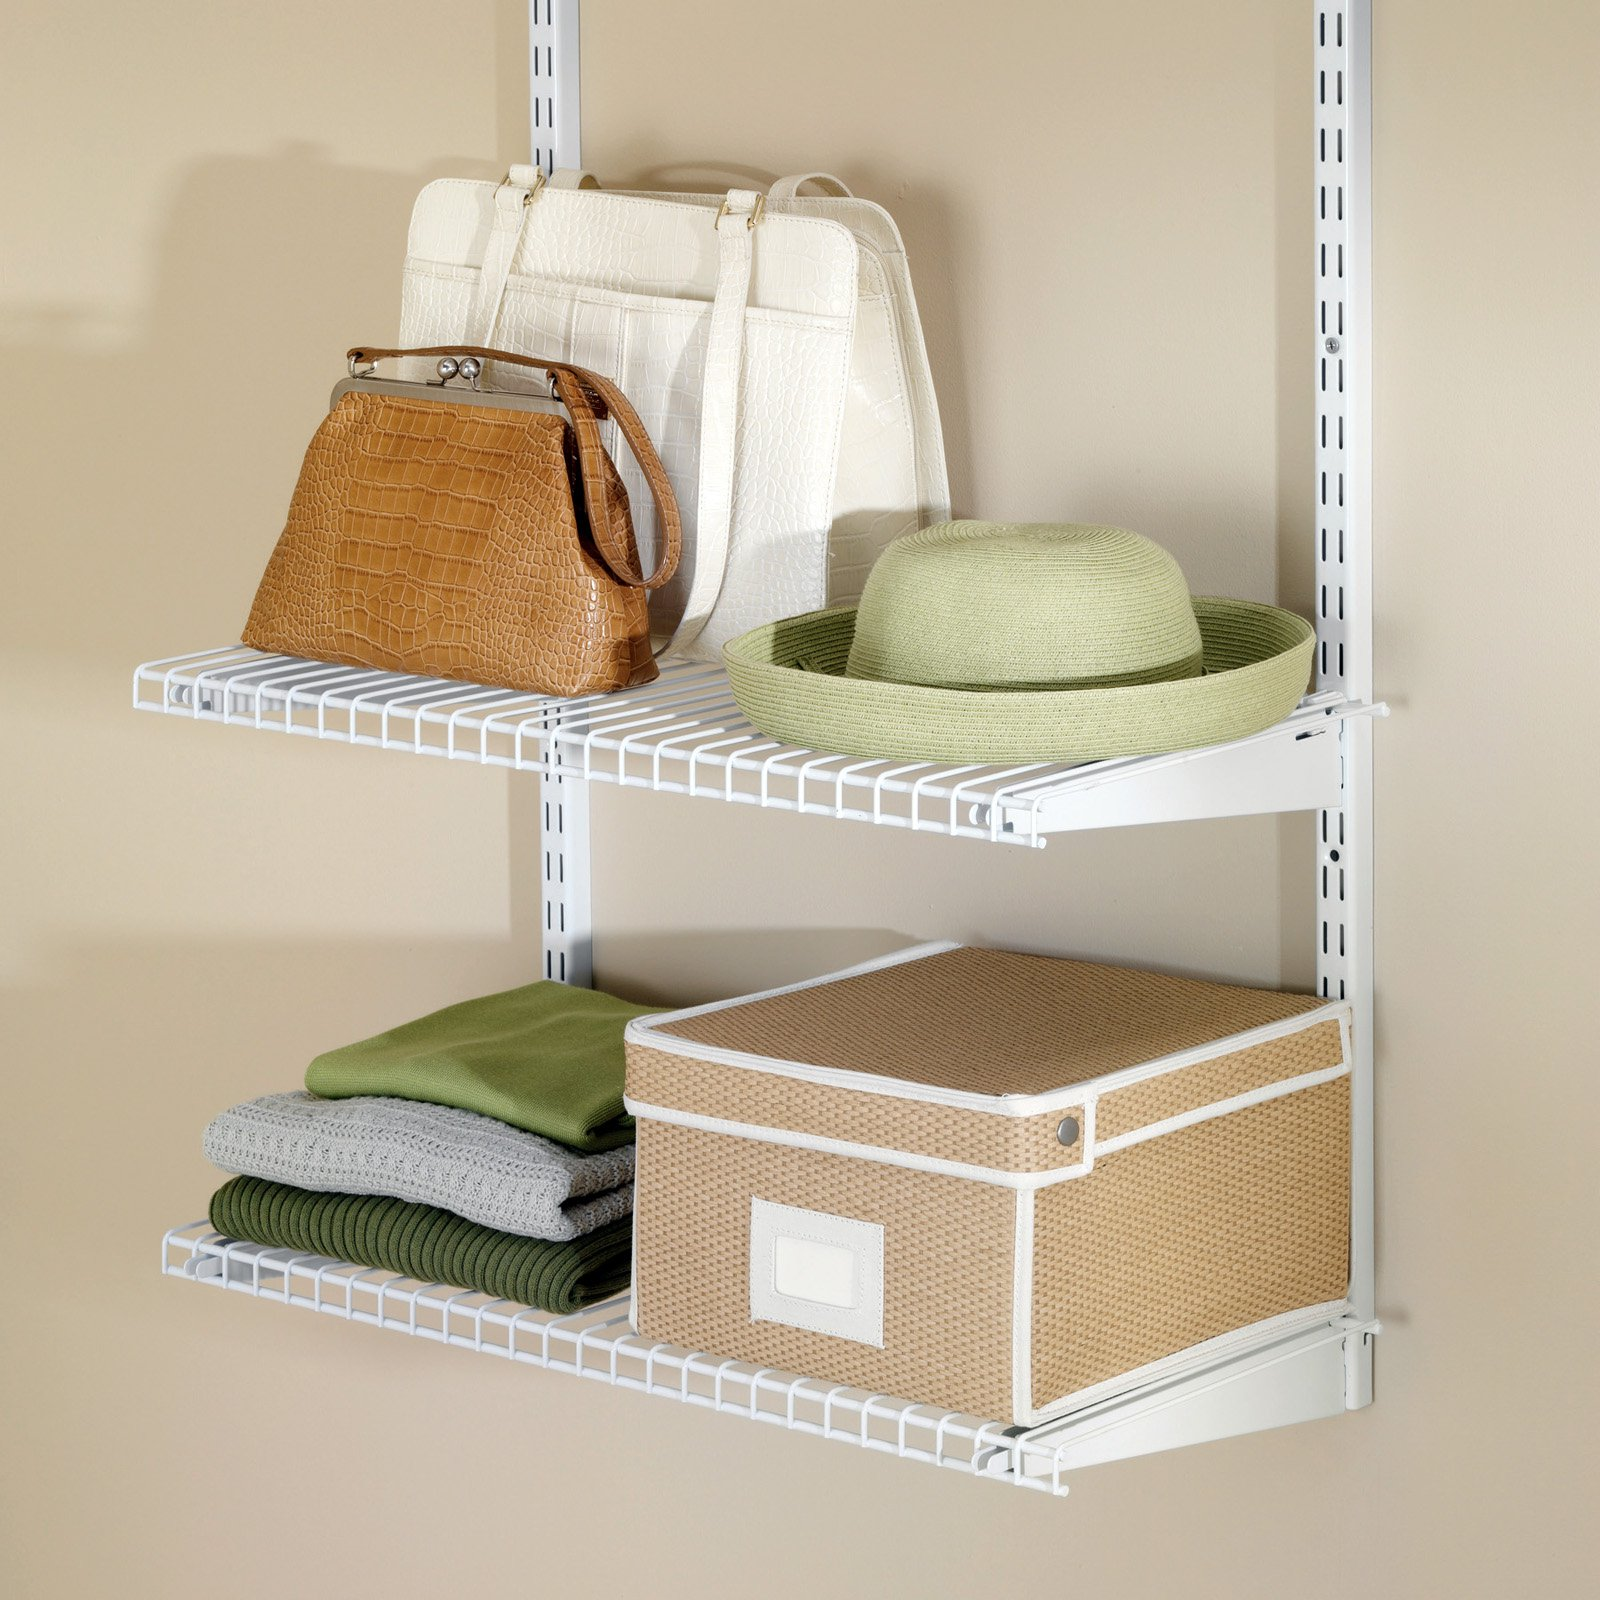 Rubbermaid Configurations Add-On Closet Shelf Kit - White - Walmart.com